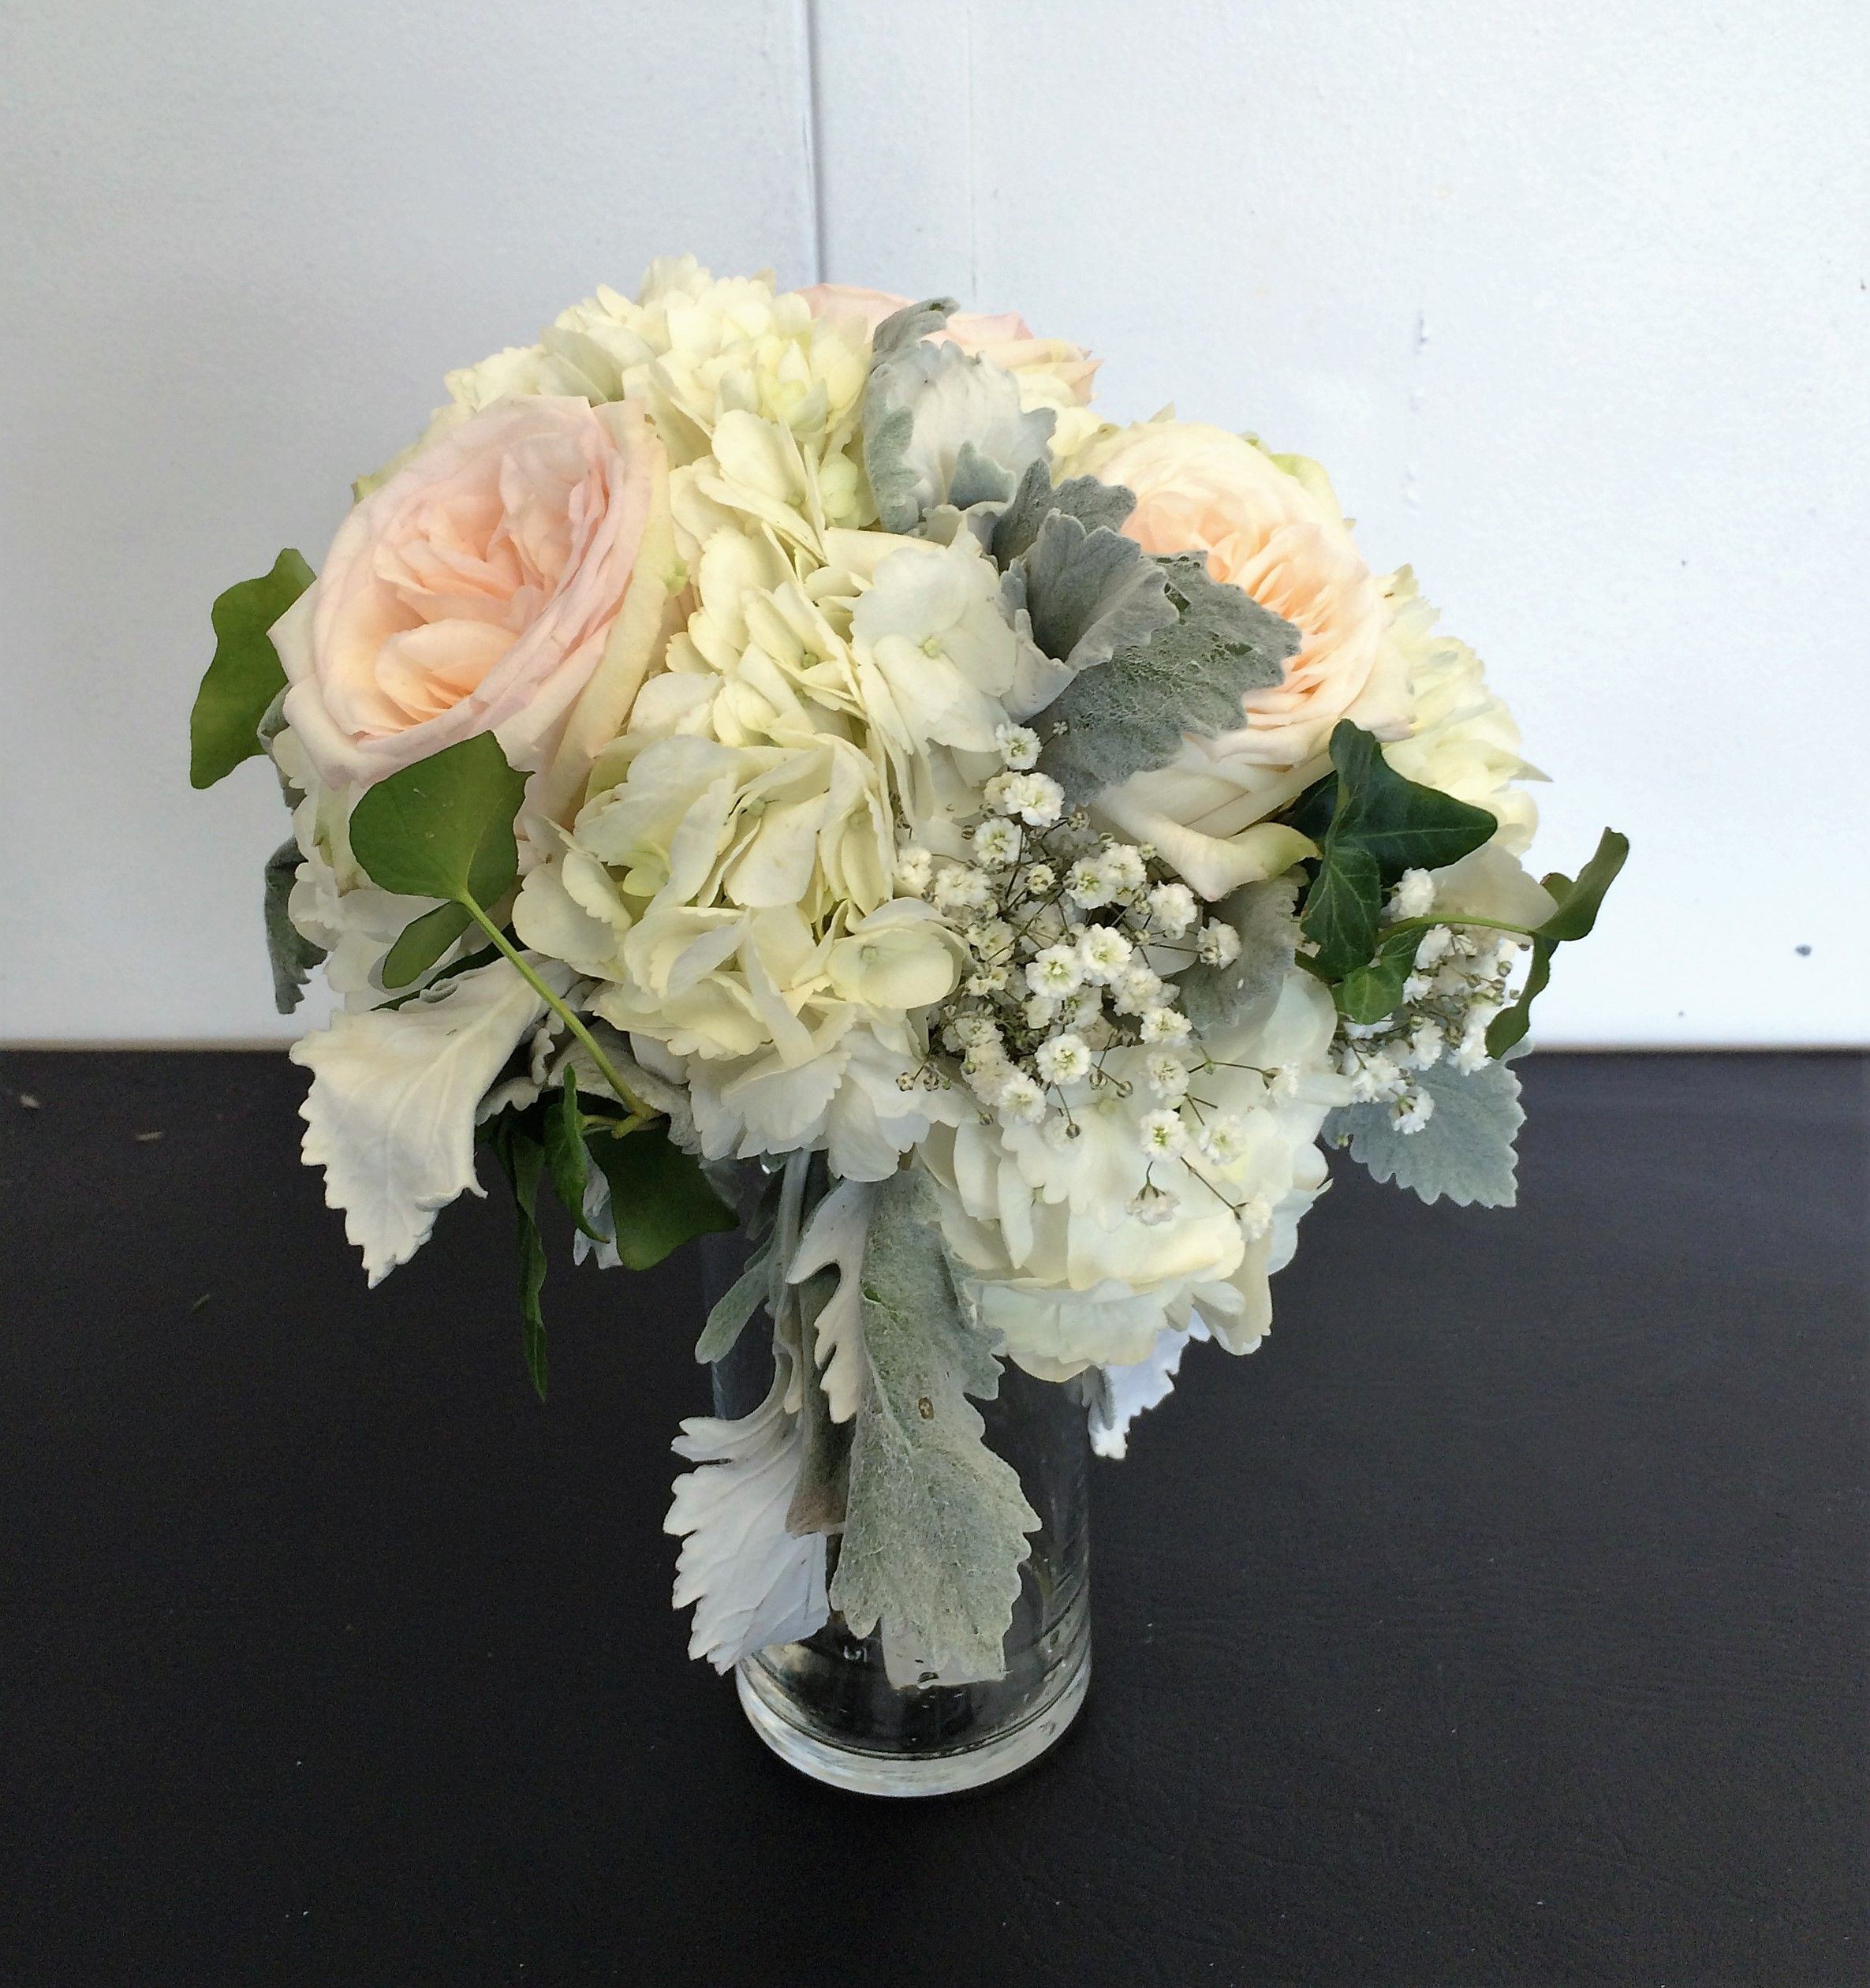 bridal bouquet blush garden roses hydrangea dusty miller babies breath white - Garden Rose And Hydrangea Bouquet